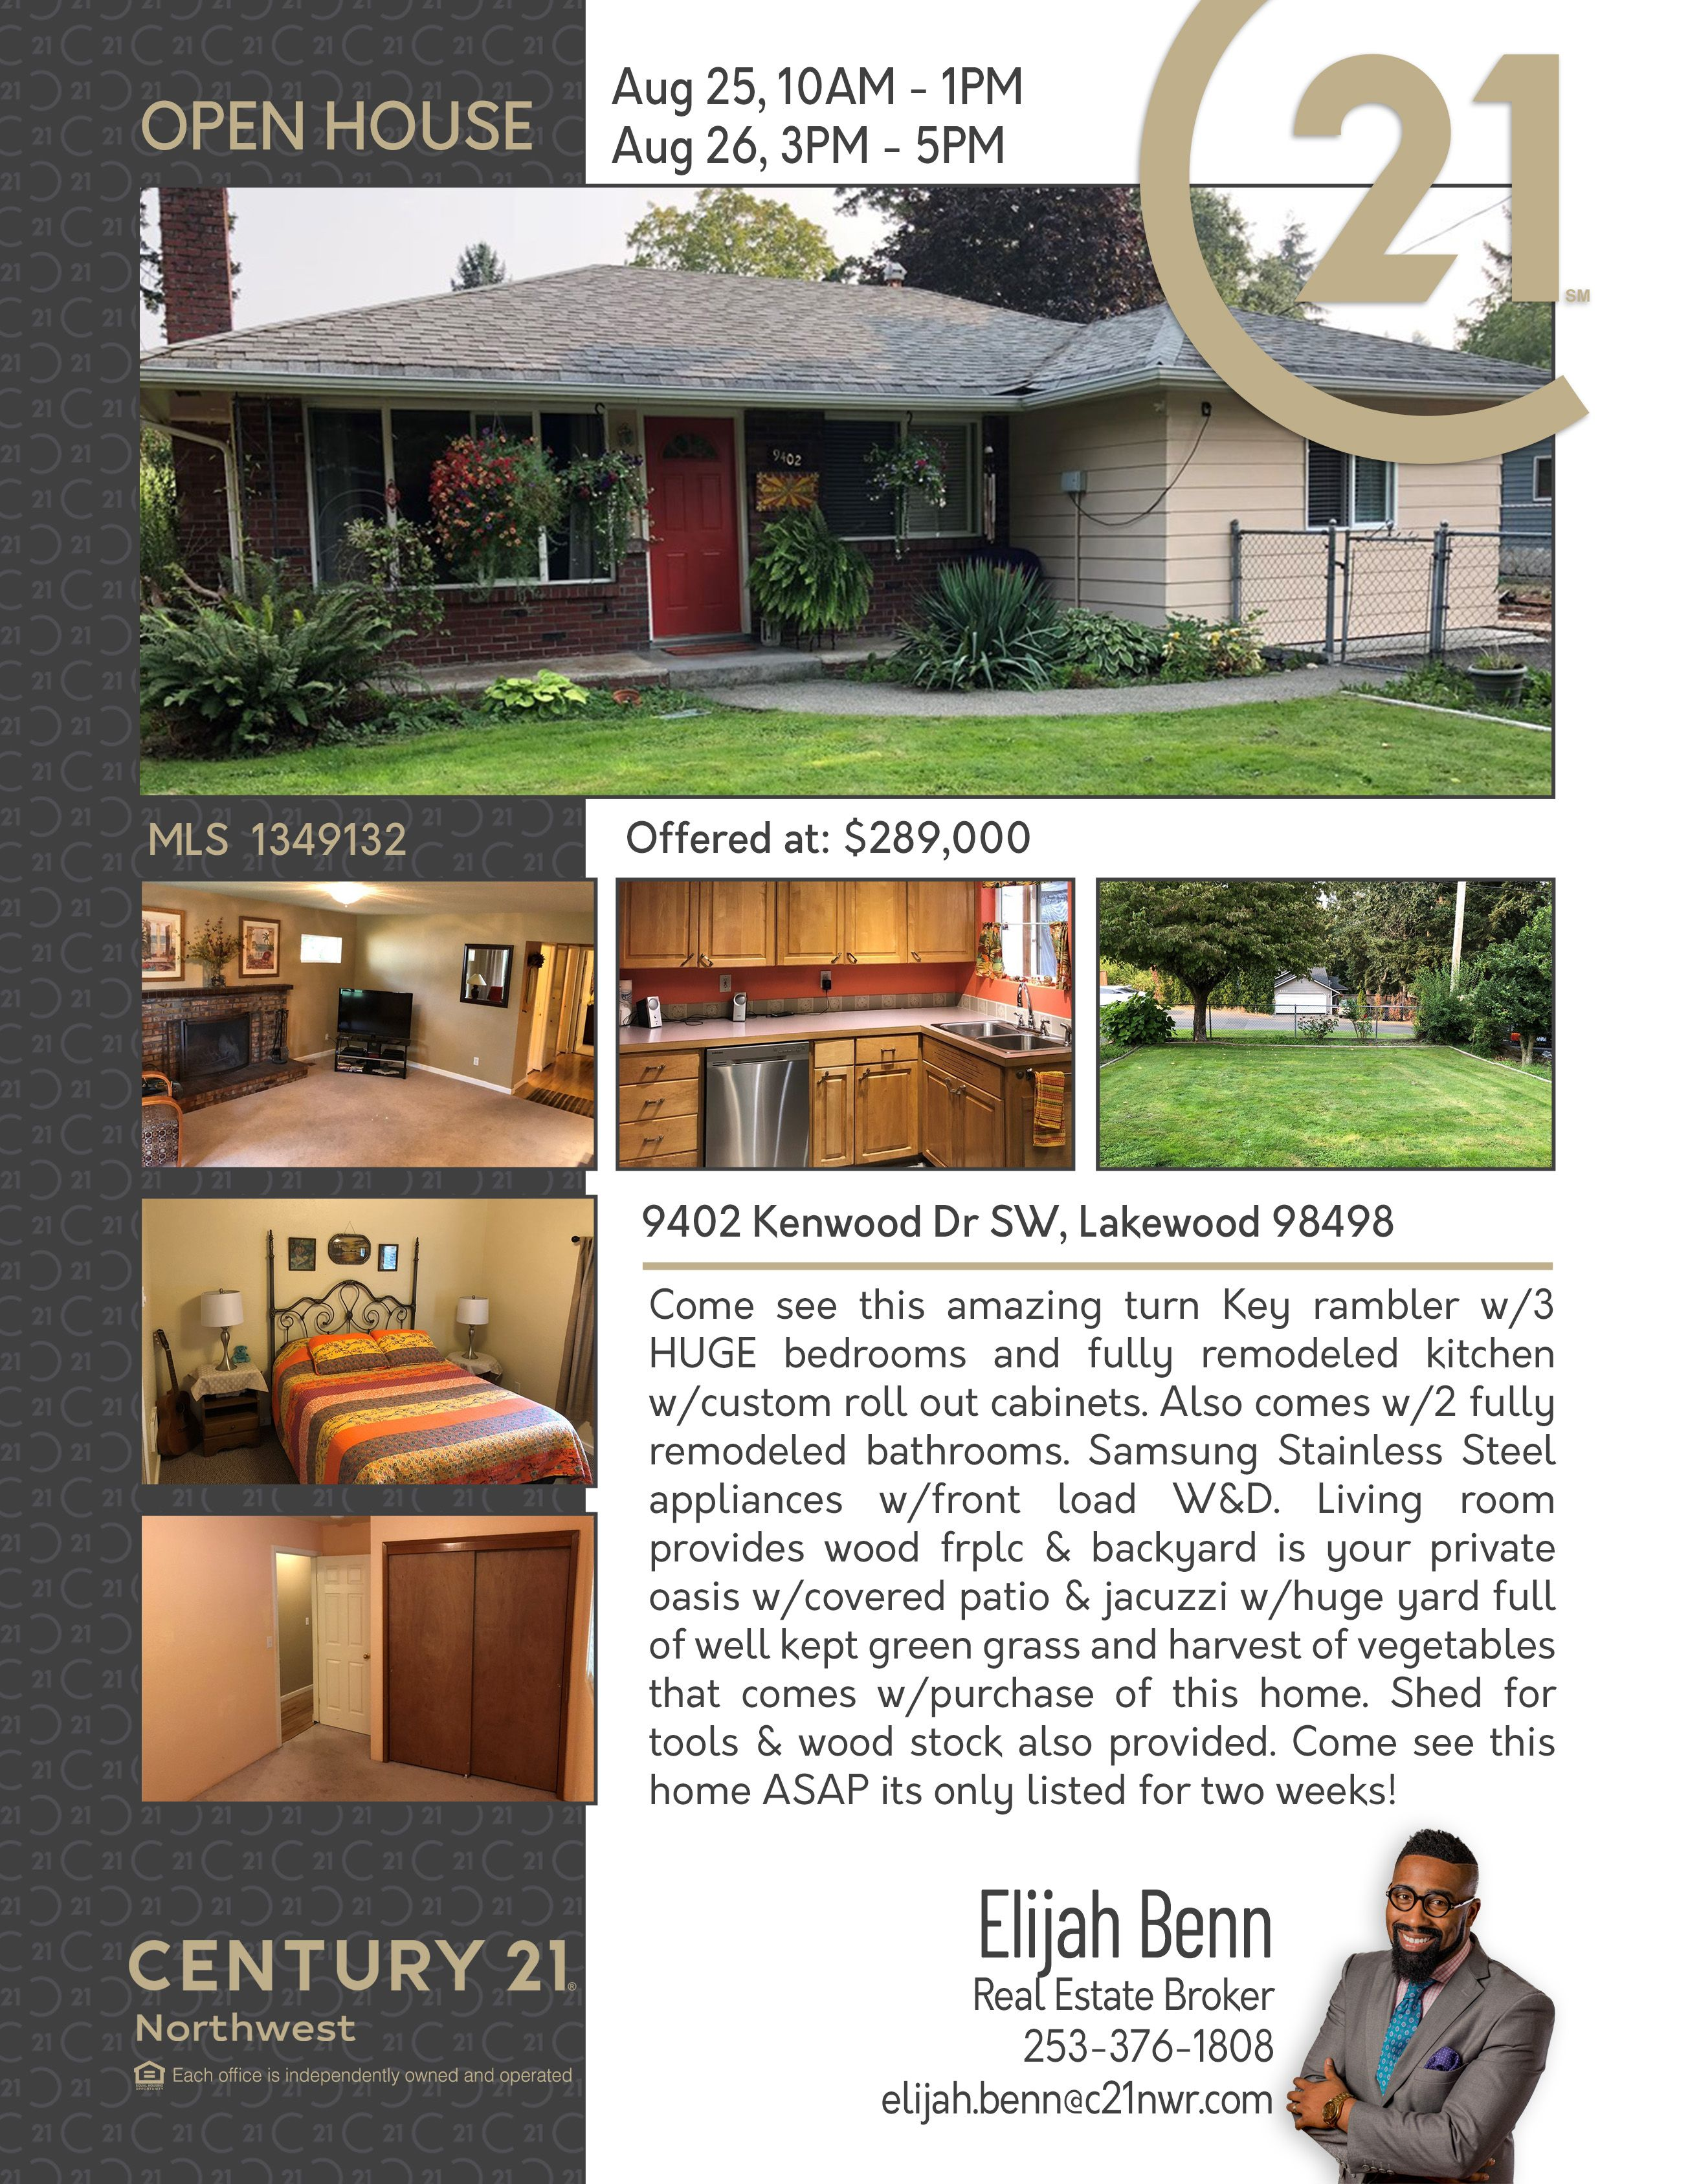 Openhouse come see this amazing turn key rambler w3 huge